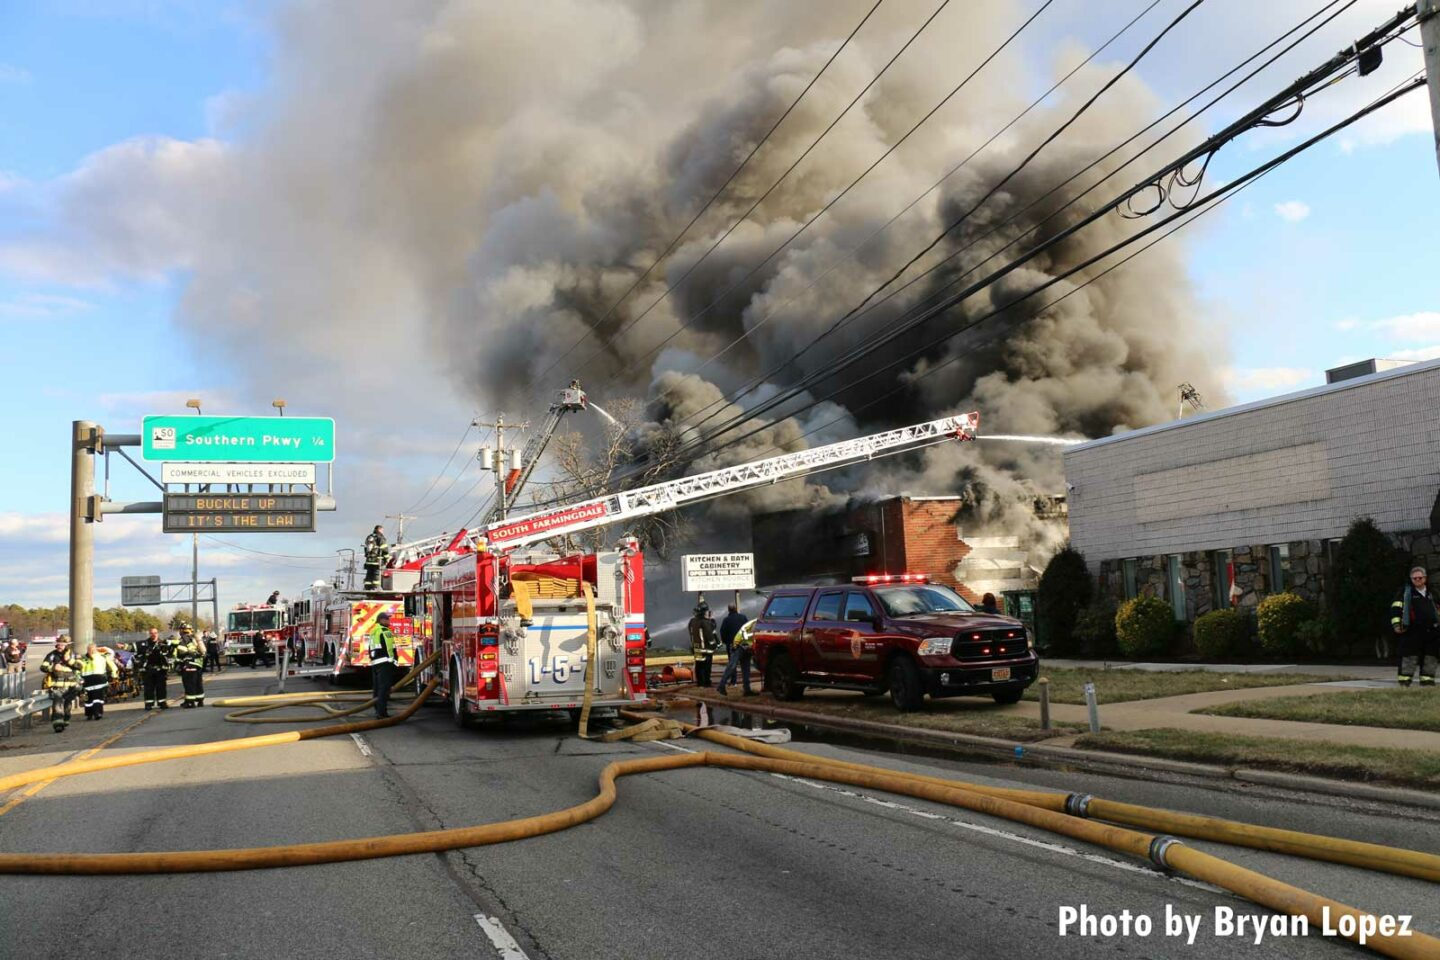 Aerial device in use over large commercial building on Long Island with smoke condition